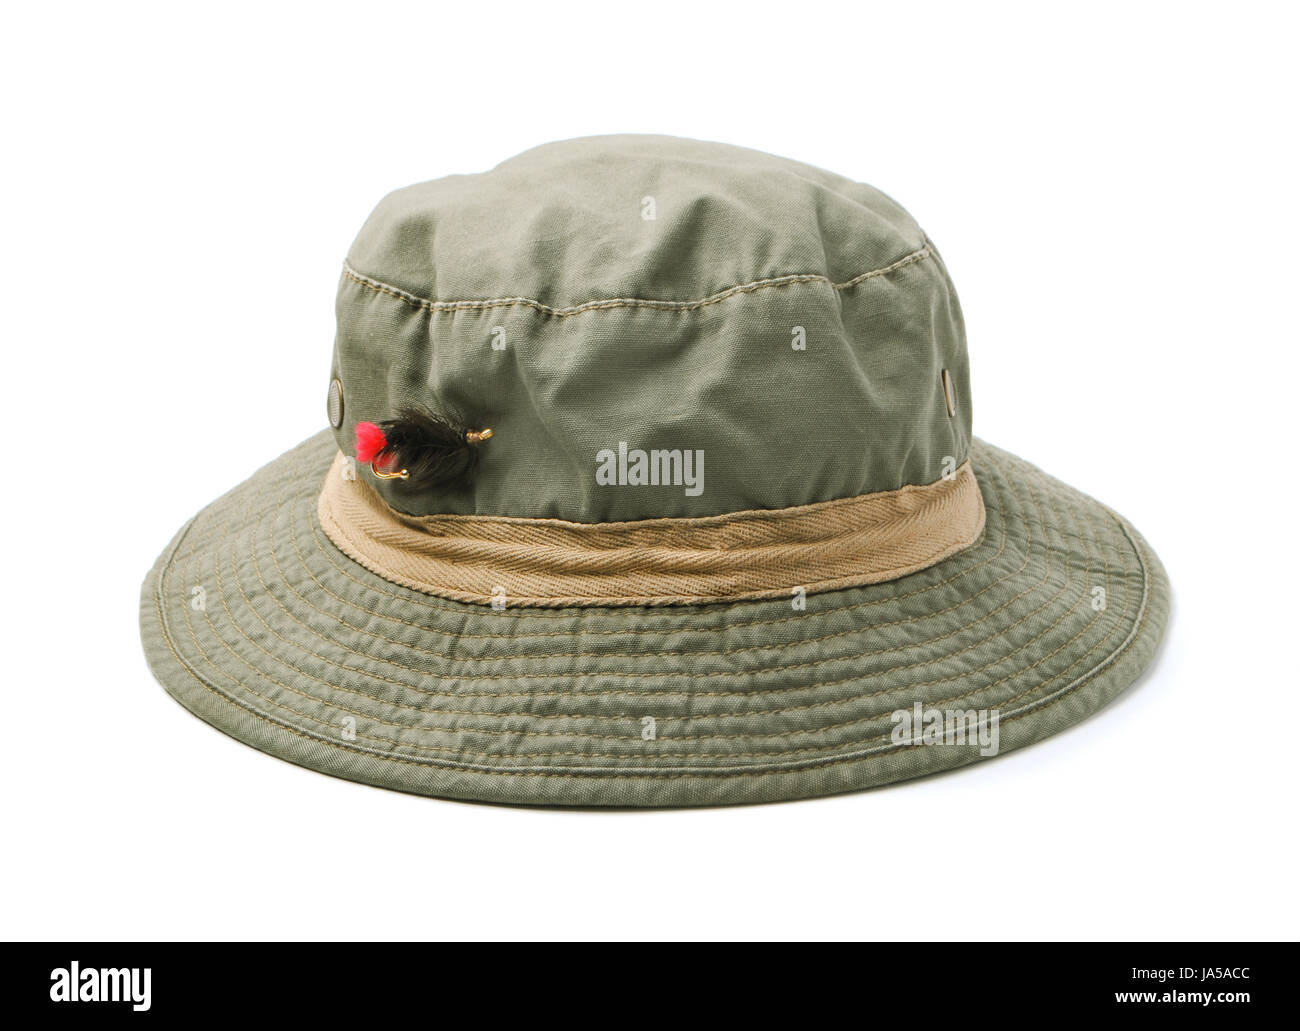 ba57dea58c63a Green fly fishing hat isolated on white Stock Photo  143947452 - Alamy